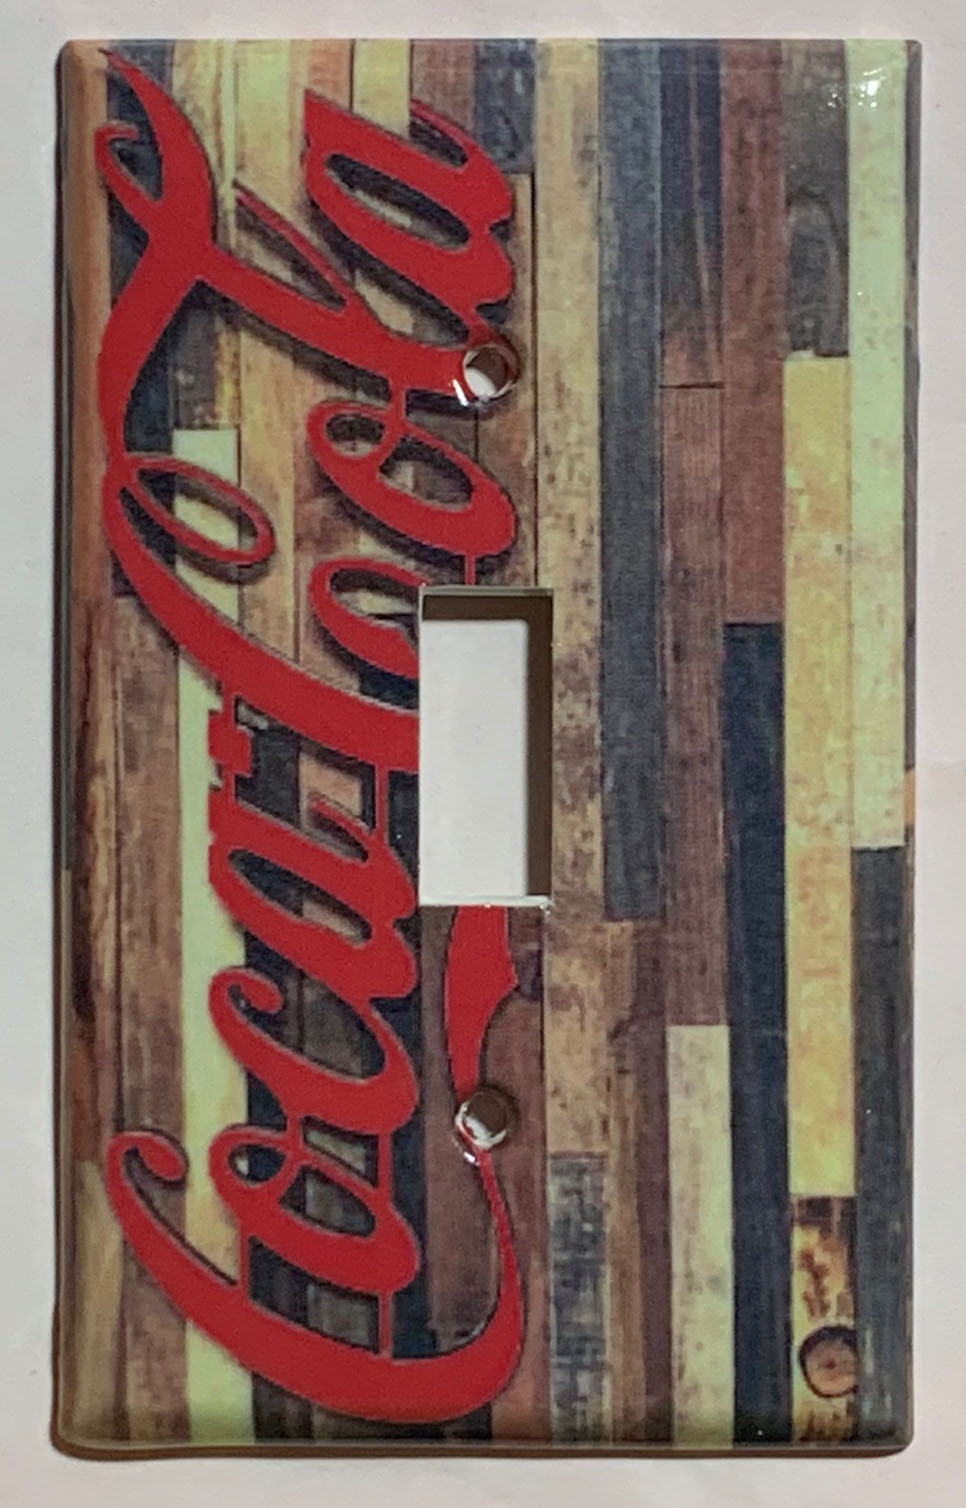 Barn Wood Coke Logo Coca Cola Light Switch Outlet wall Cover Plate Home Decor